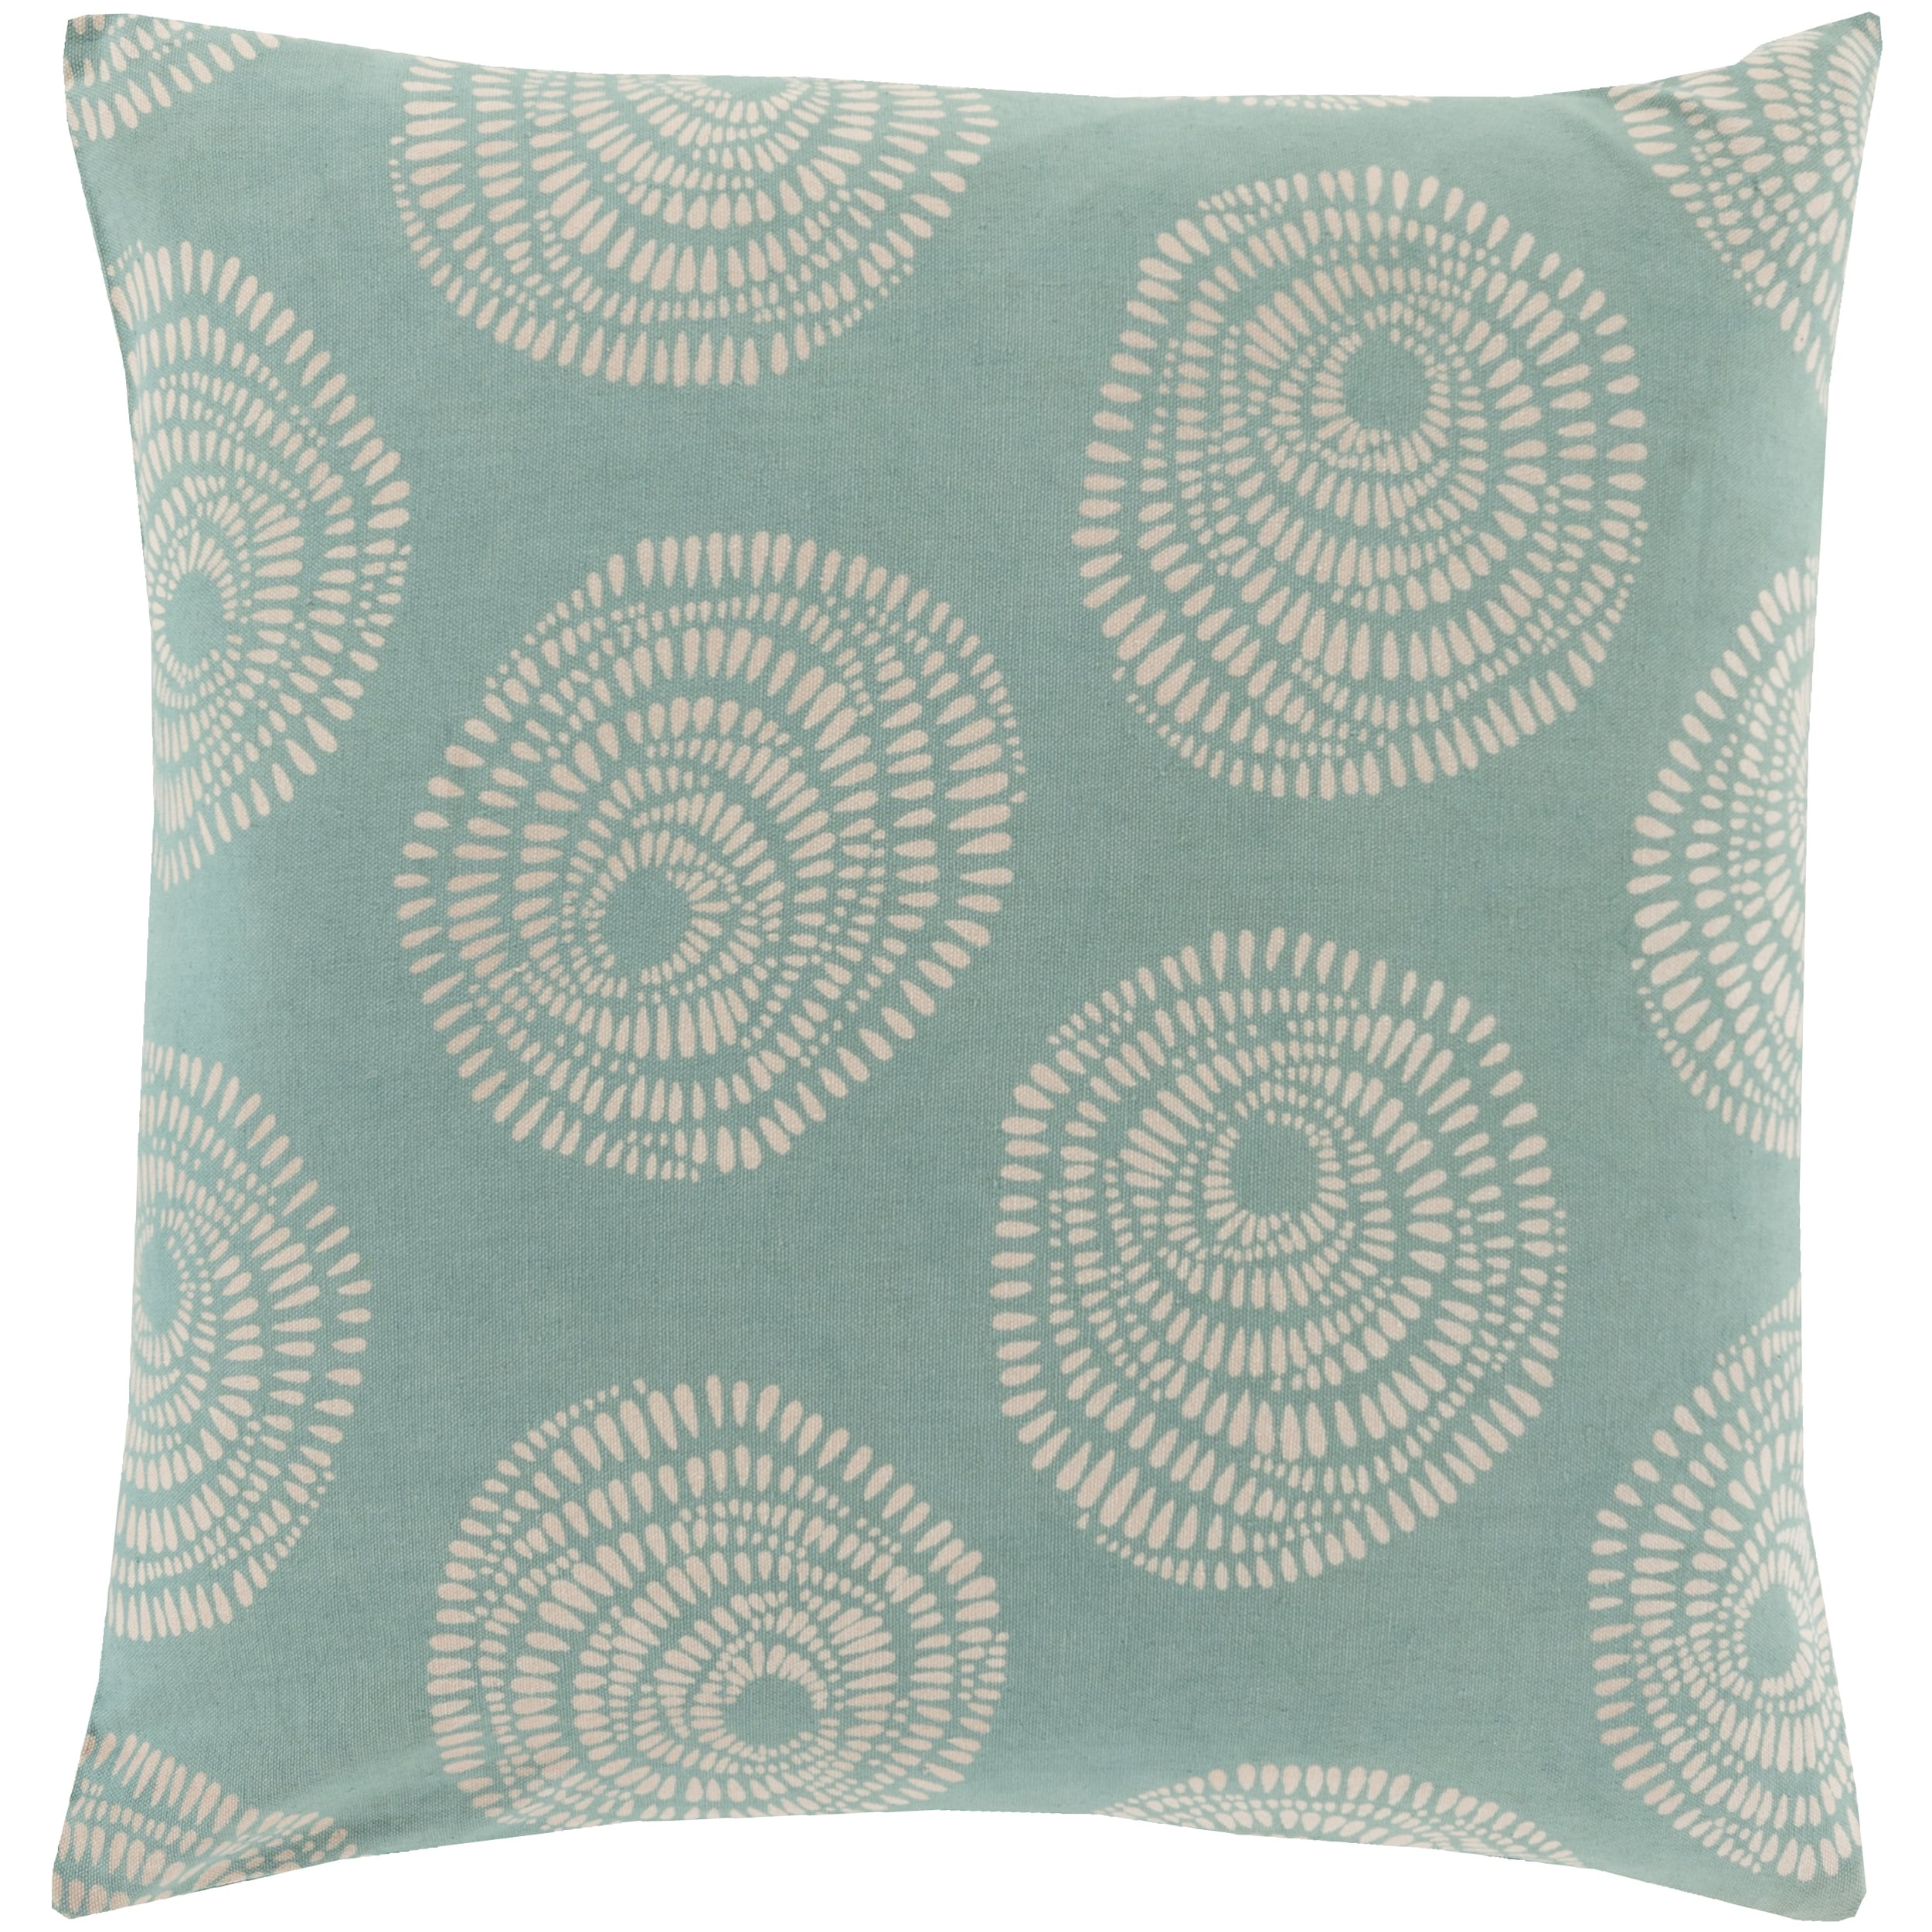 Decorative Cailyn Circles and Dots 22-inch Throw Pillow (Down)